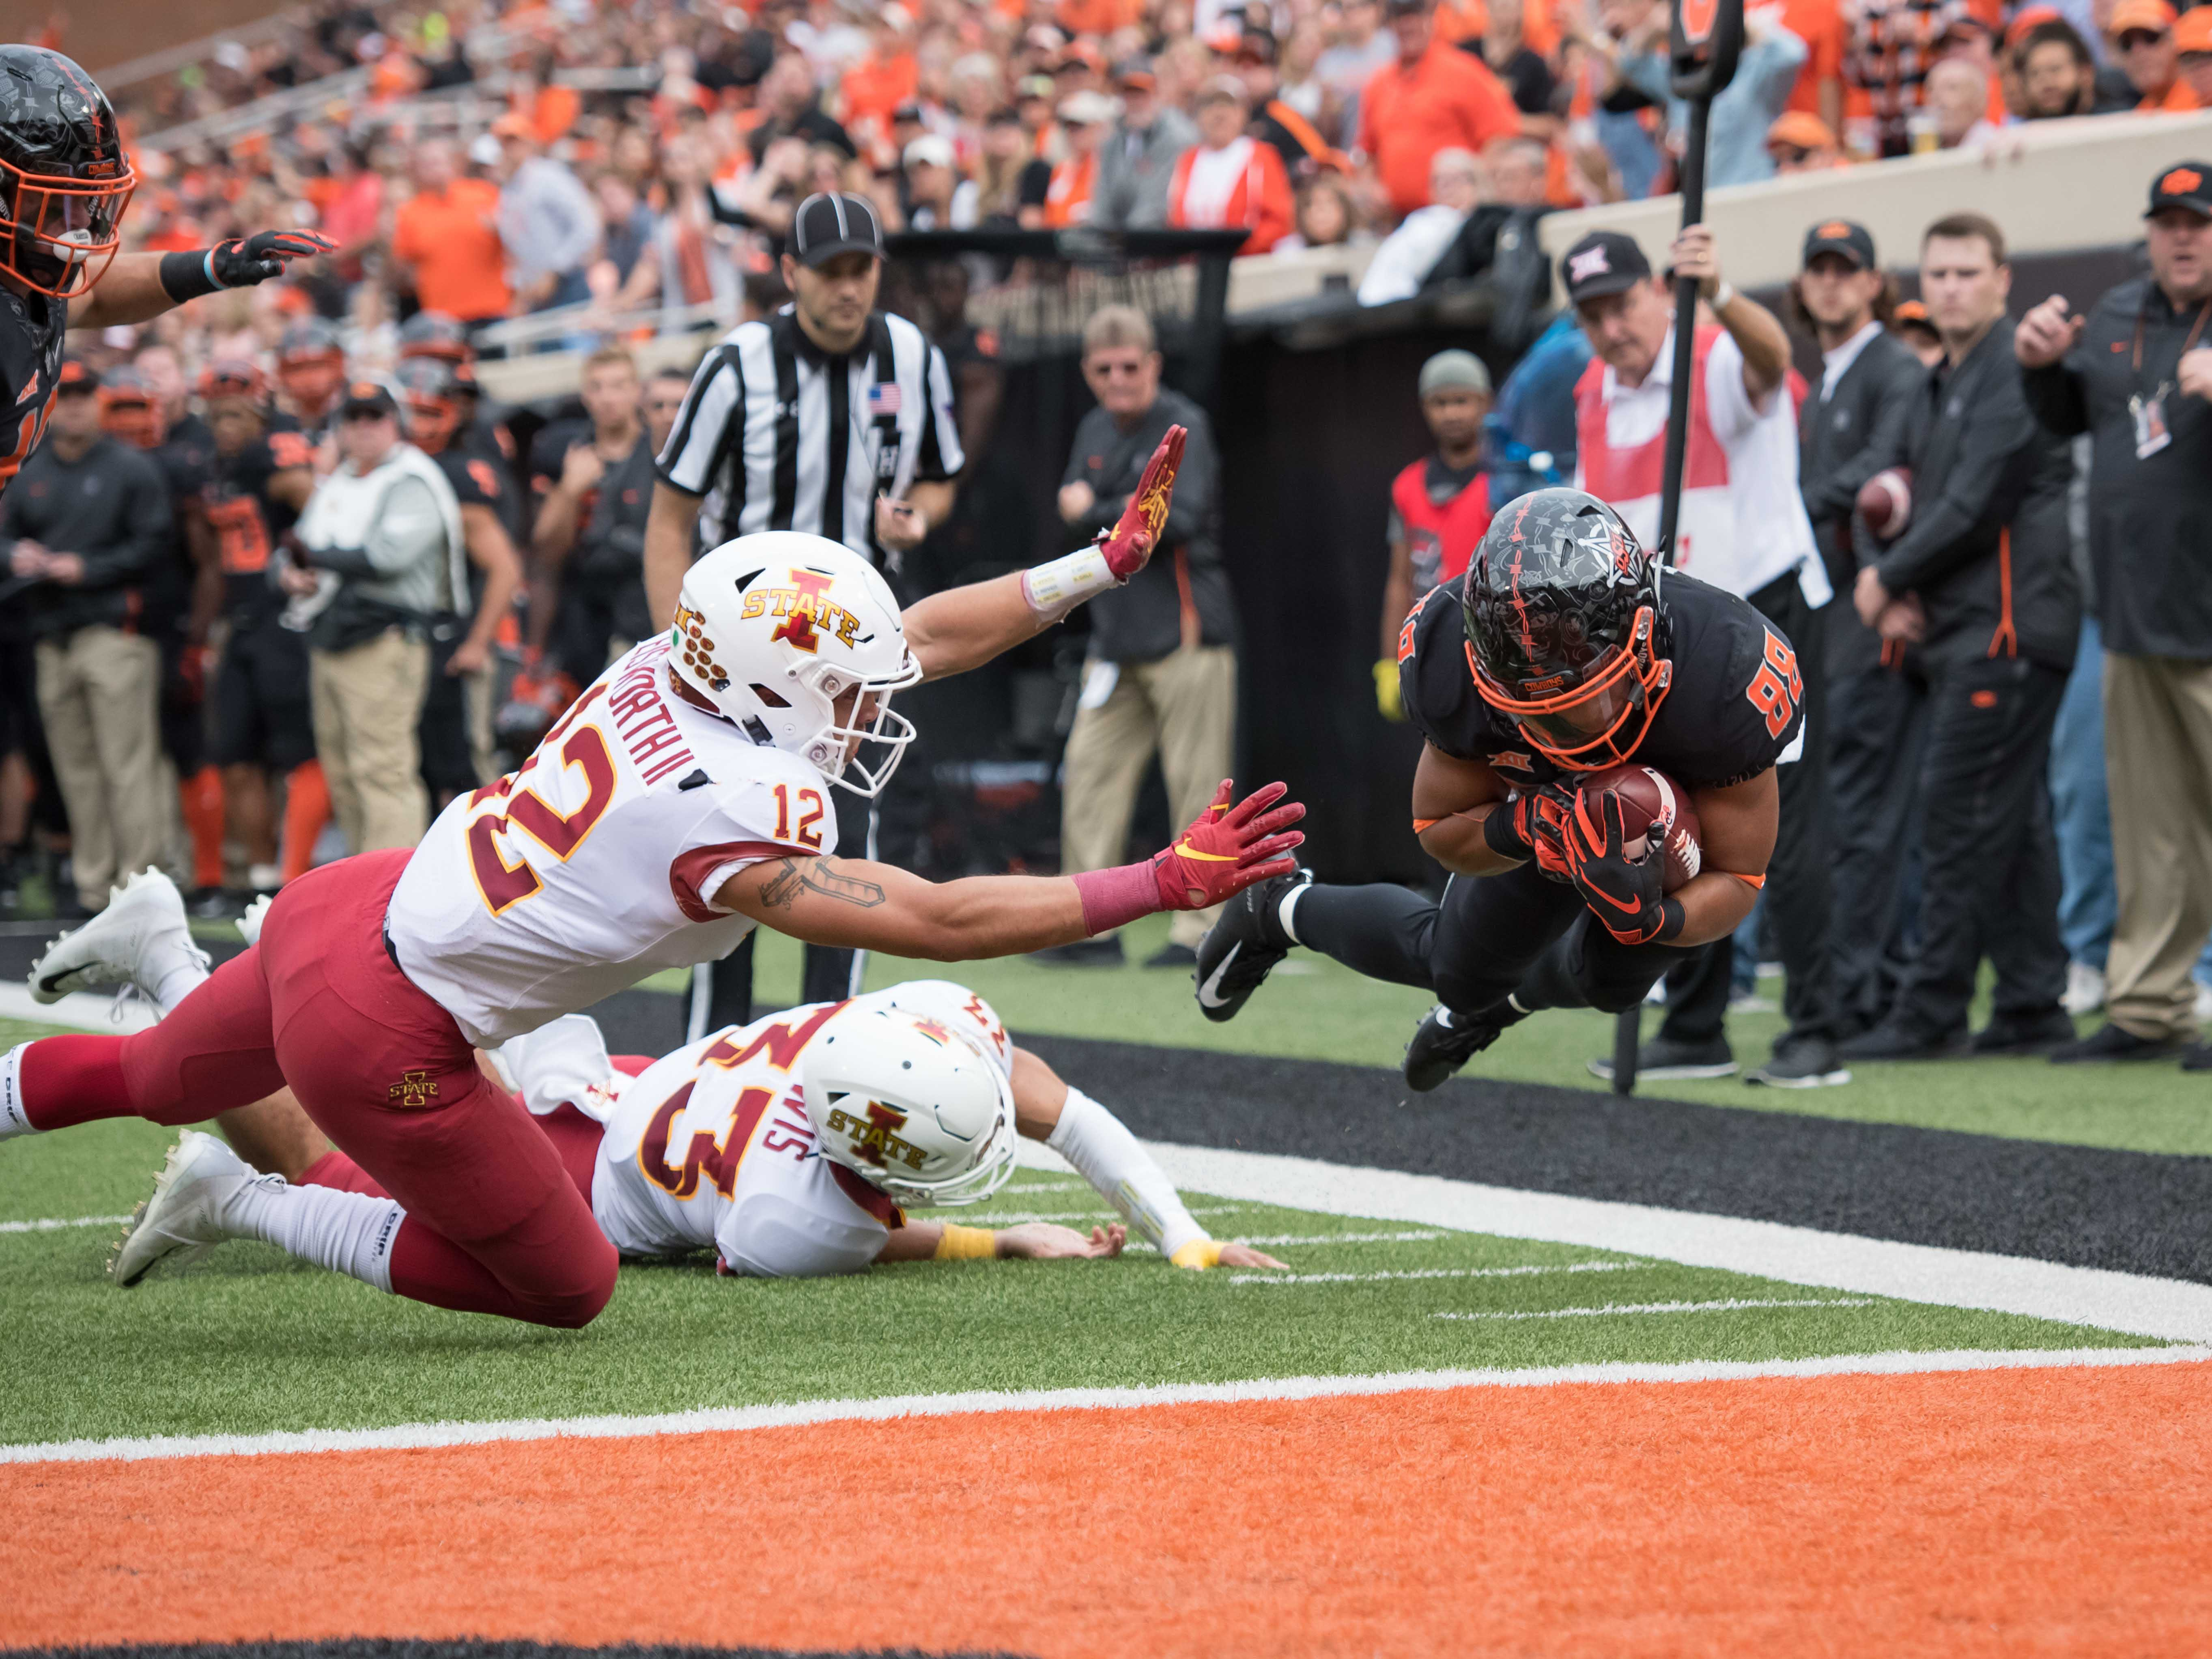 Oct 6, 2018; Stillwater, OK, USA; Oklahoma State Cowboys wide receiver Landon Wolf (88) dives for a touchdown against Iowa State Cyclones defensive back Greg Eisworth (12) and defensive back Braxton Lewis (33) during the first half at Boone Pickens Stadium.